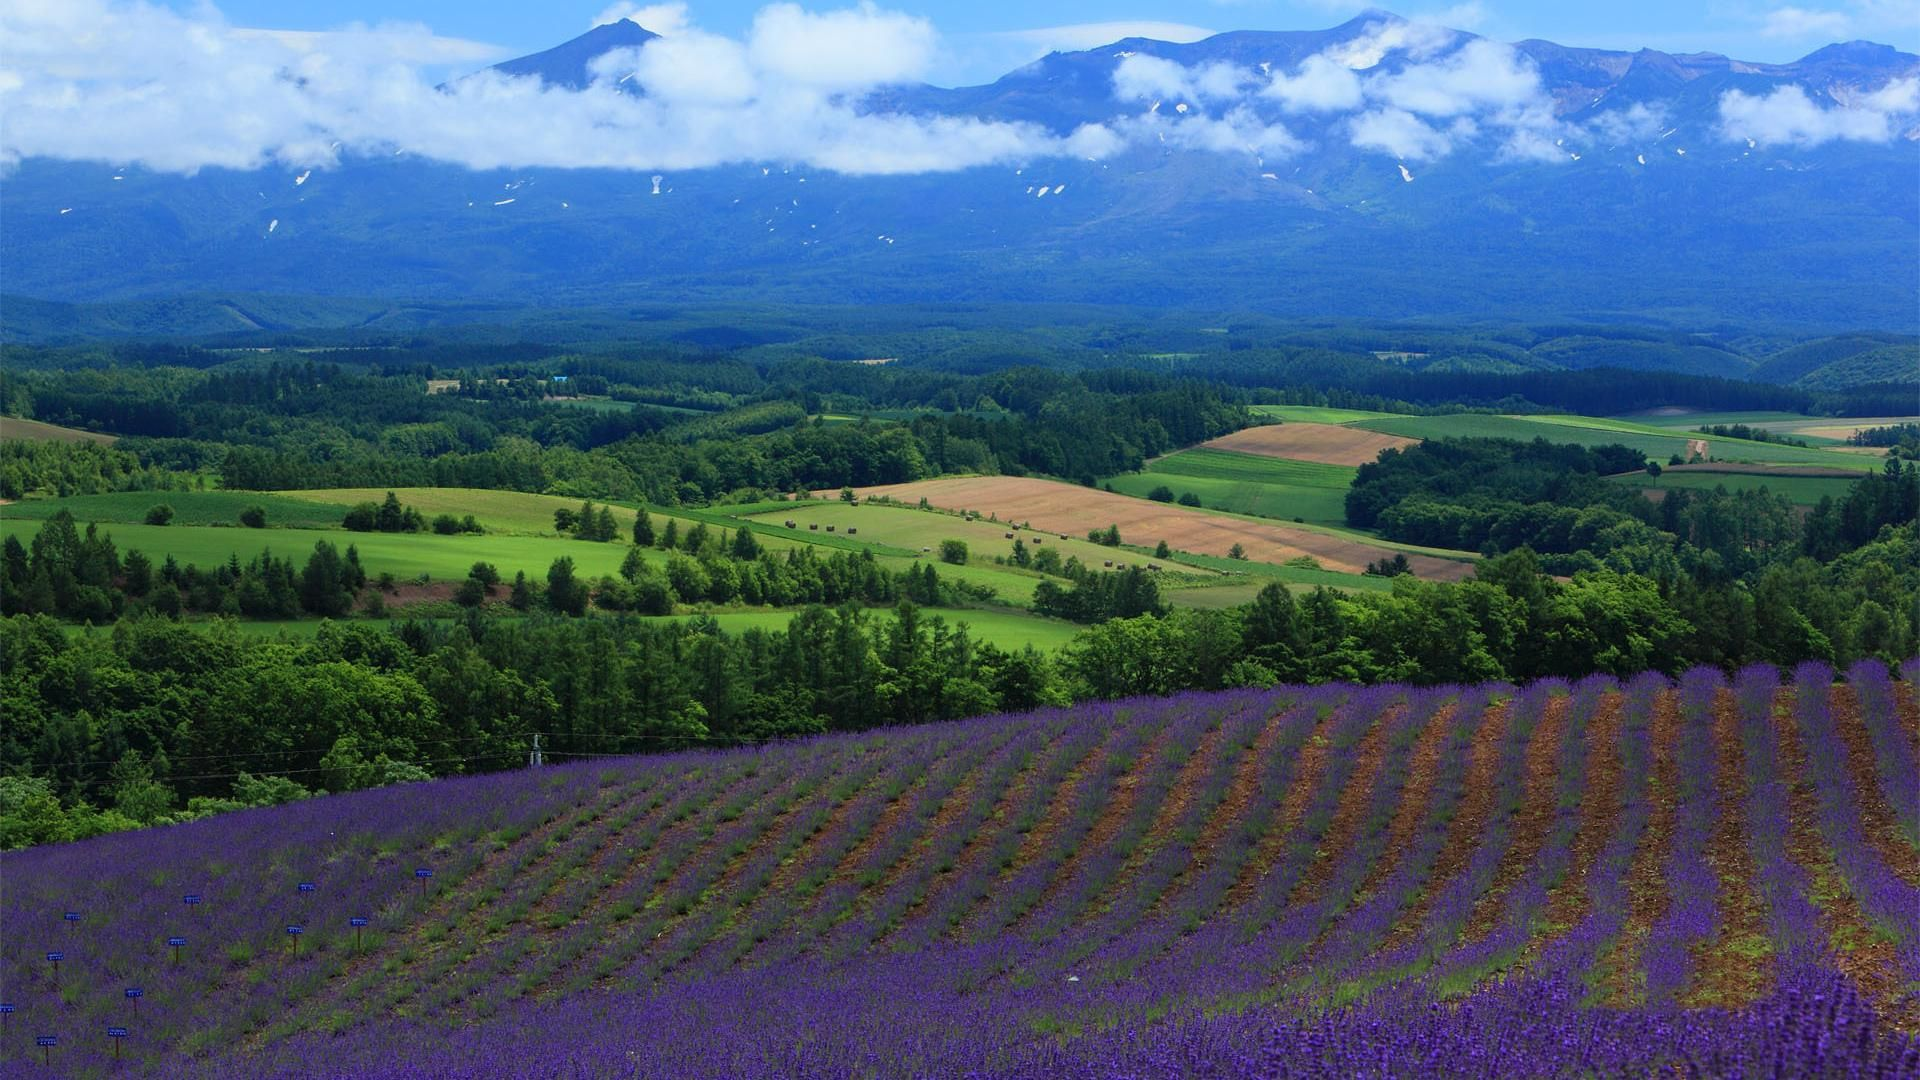 Lavender Fields In The Mountains